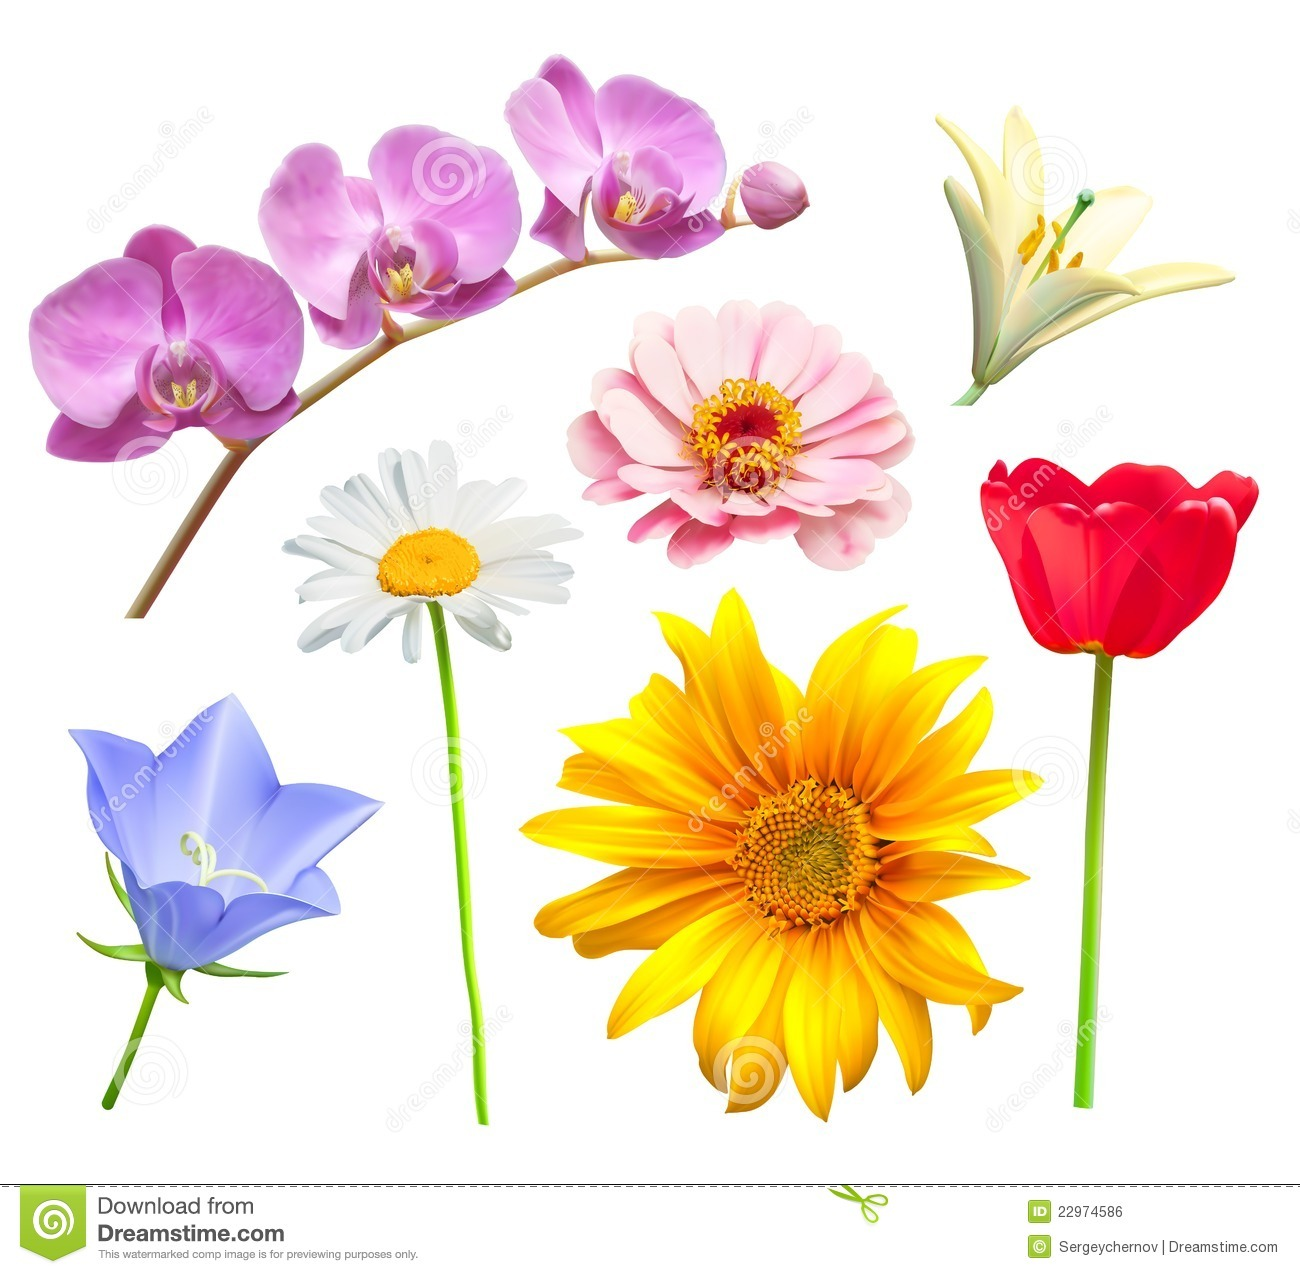 Flower vector set. Orchid, tulip, chamomile, lily, bluebell and daisy.